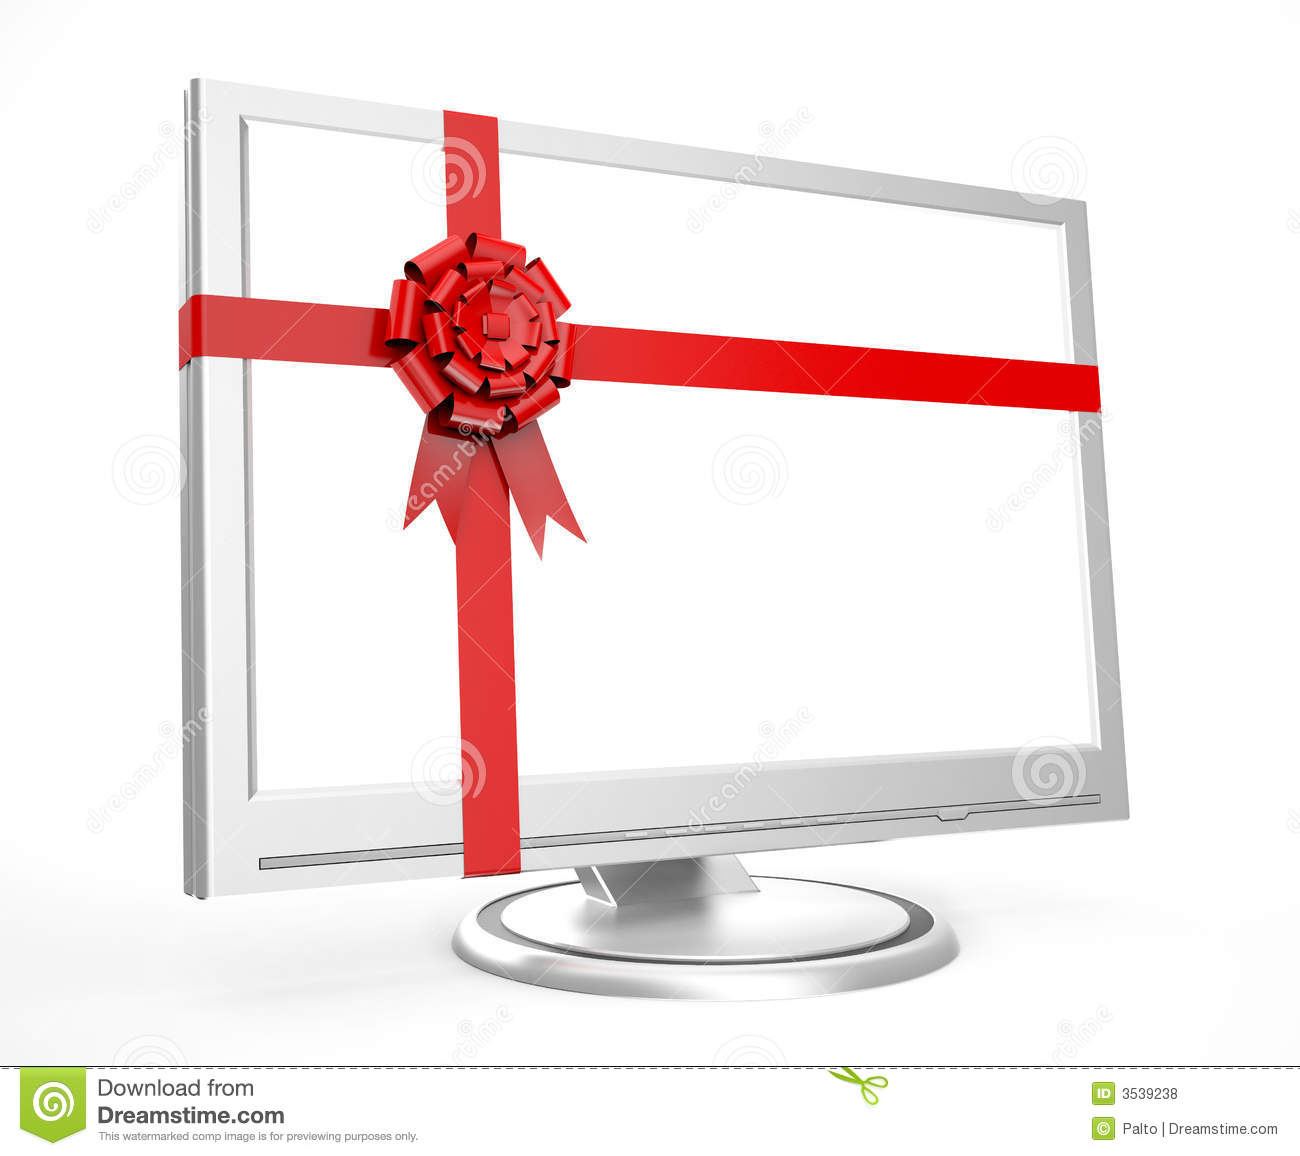 Monitor in a gift stock illustration. Illustration of open - 3539238